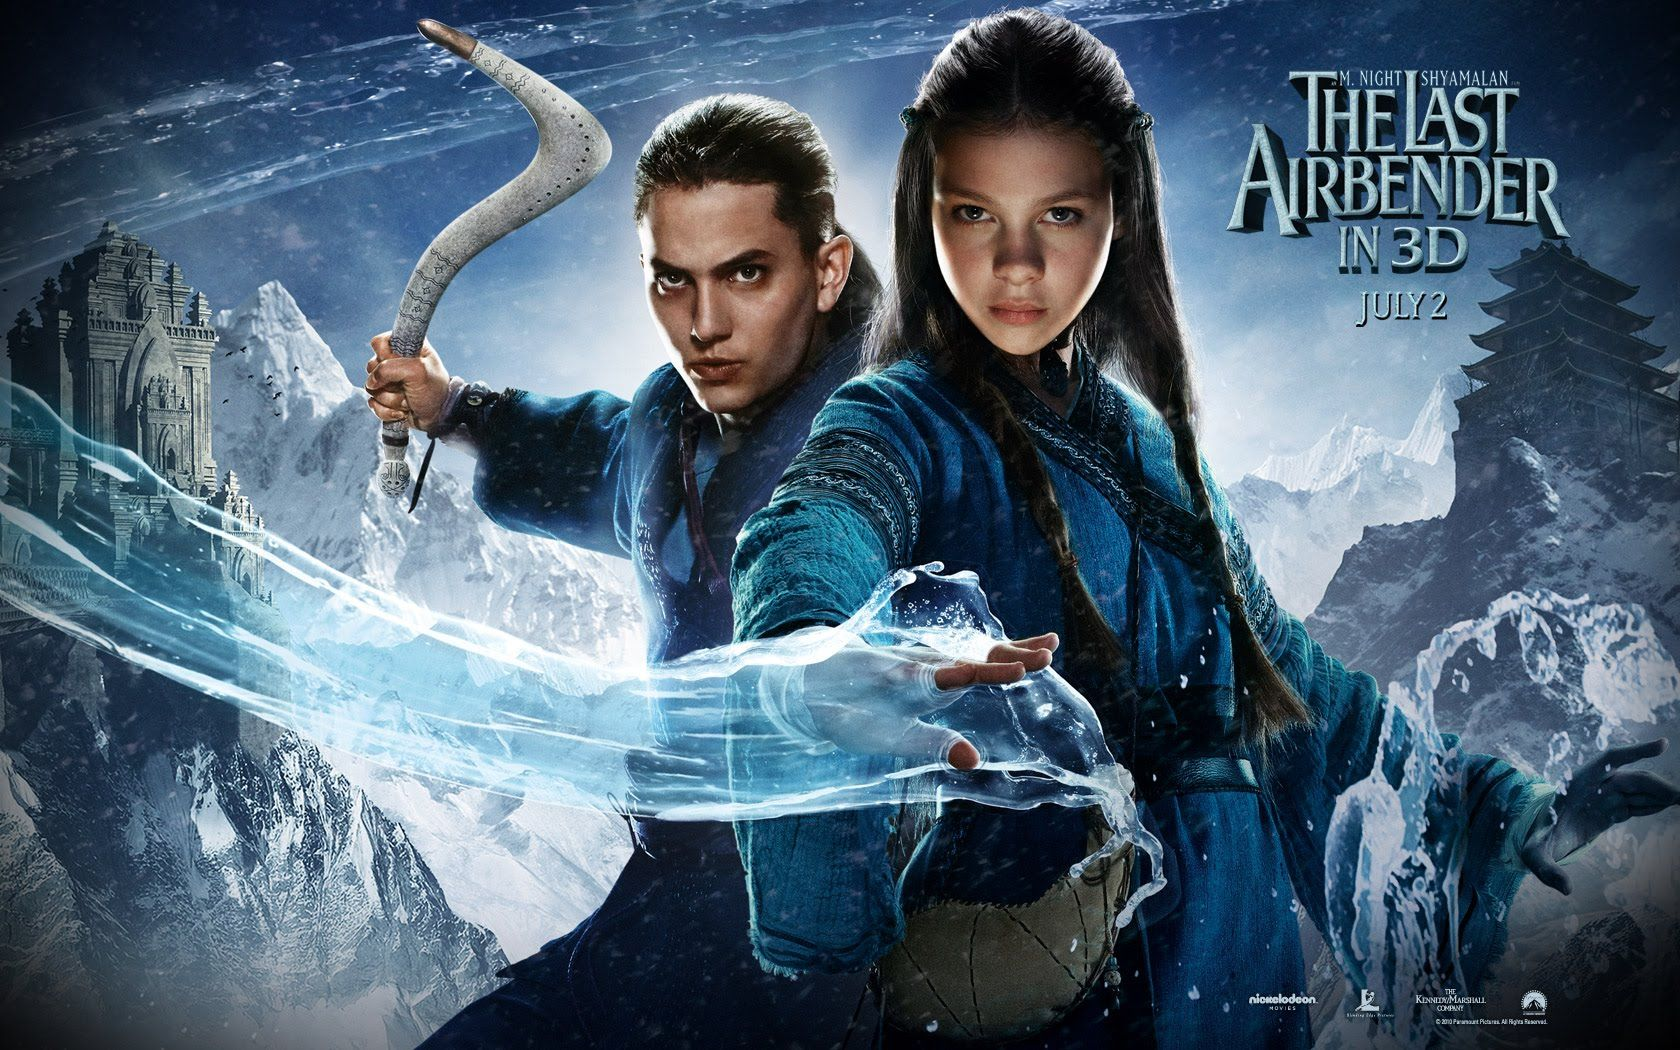 best action movies 2016 the last airbender fantasy movies 2016 movies pinterest. Black Bedroom Furniture Sets. Home Design Ideas